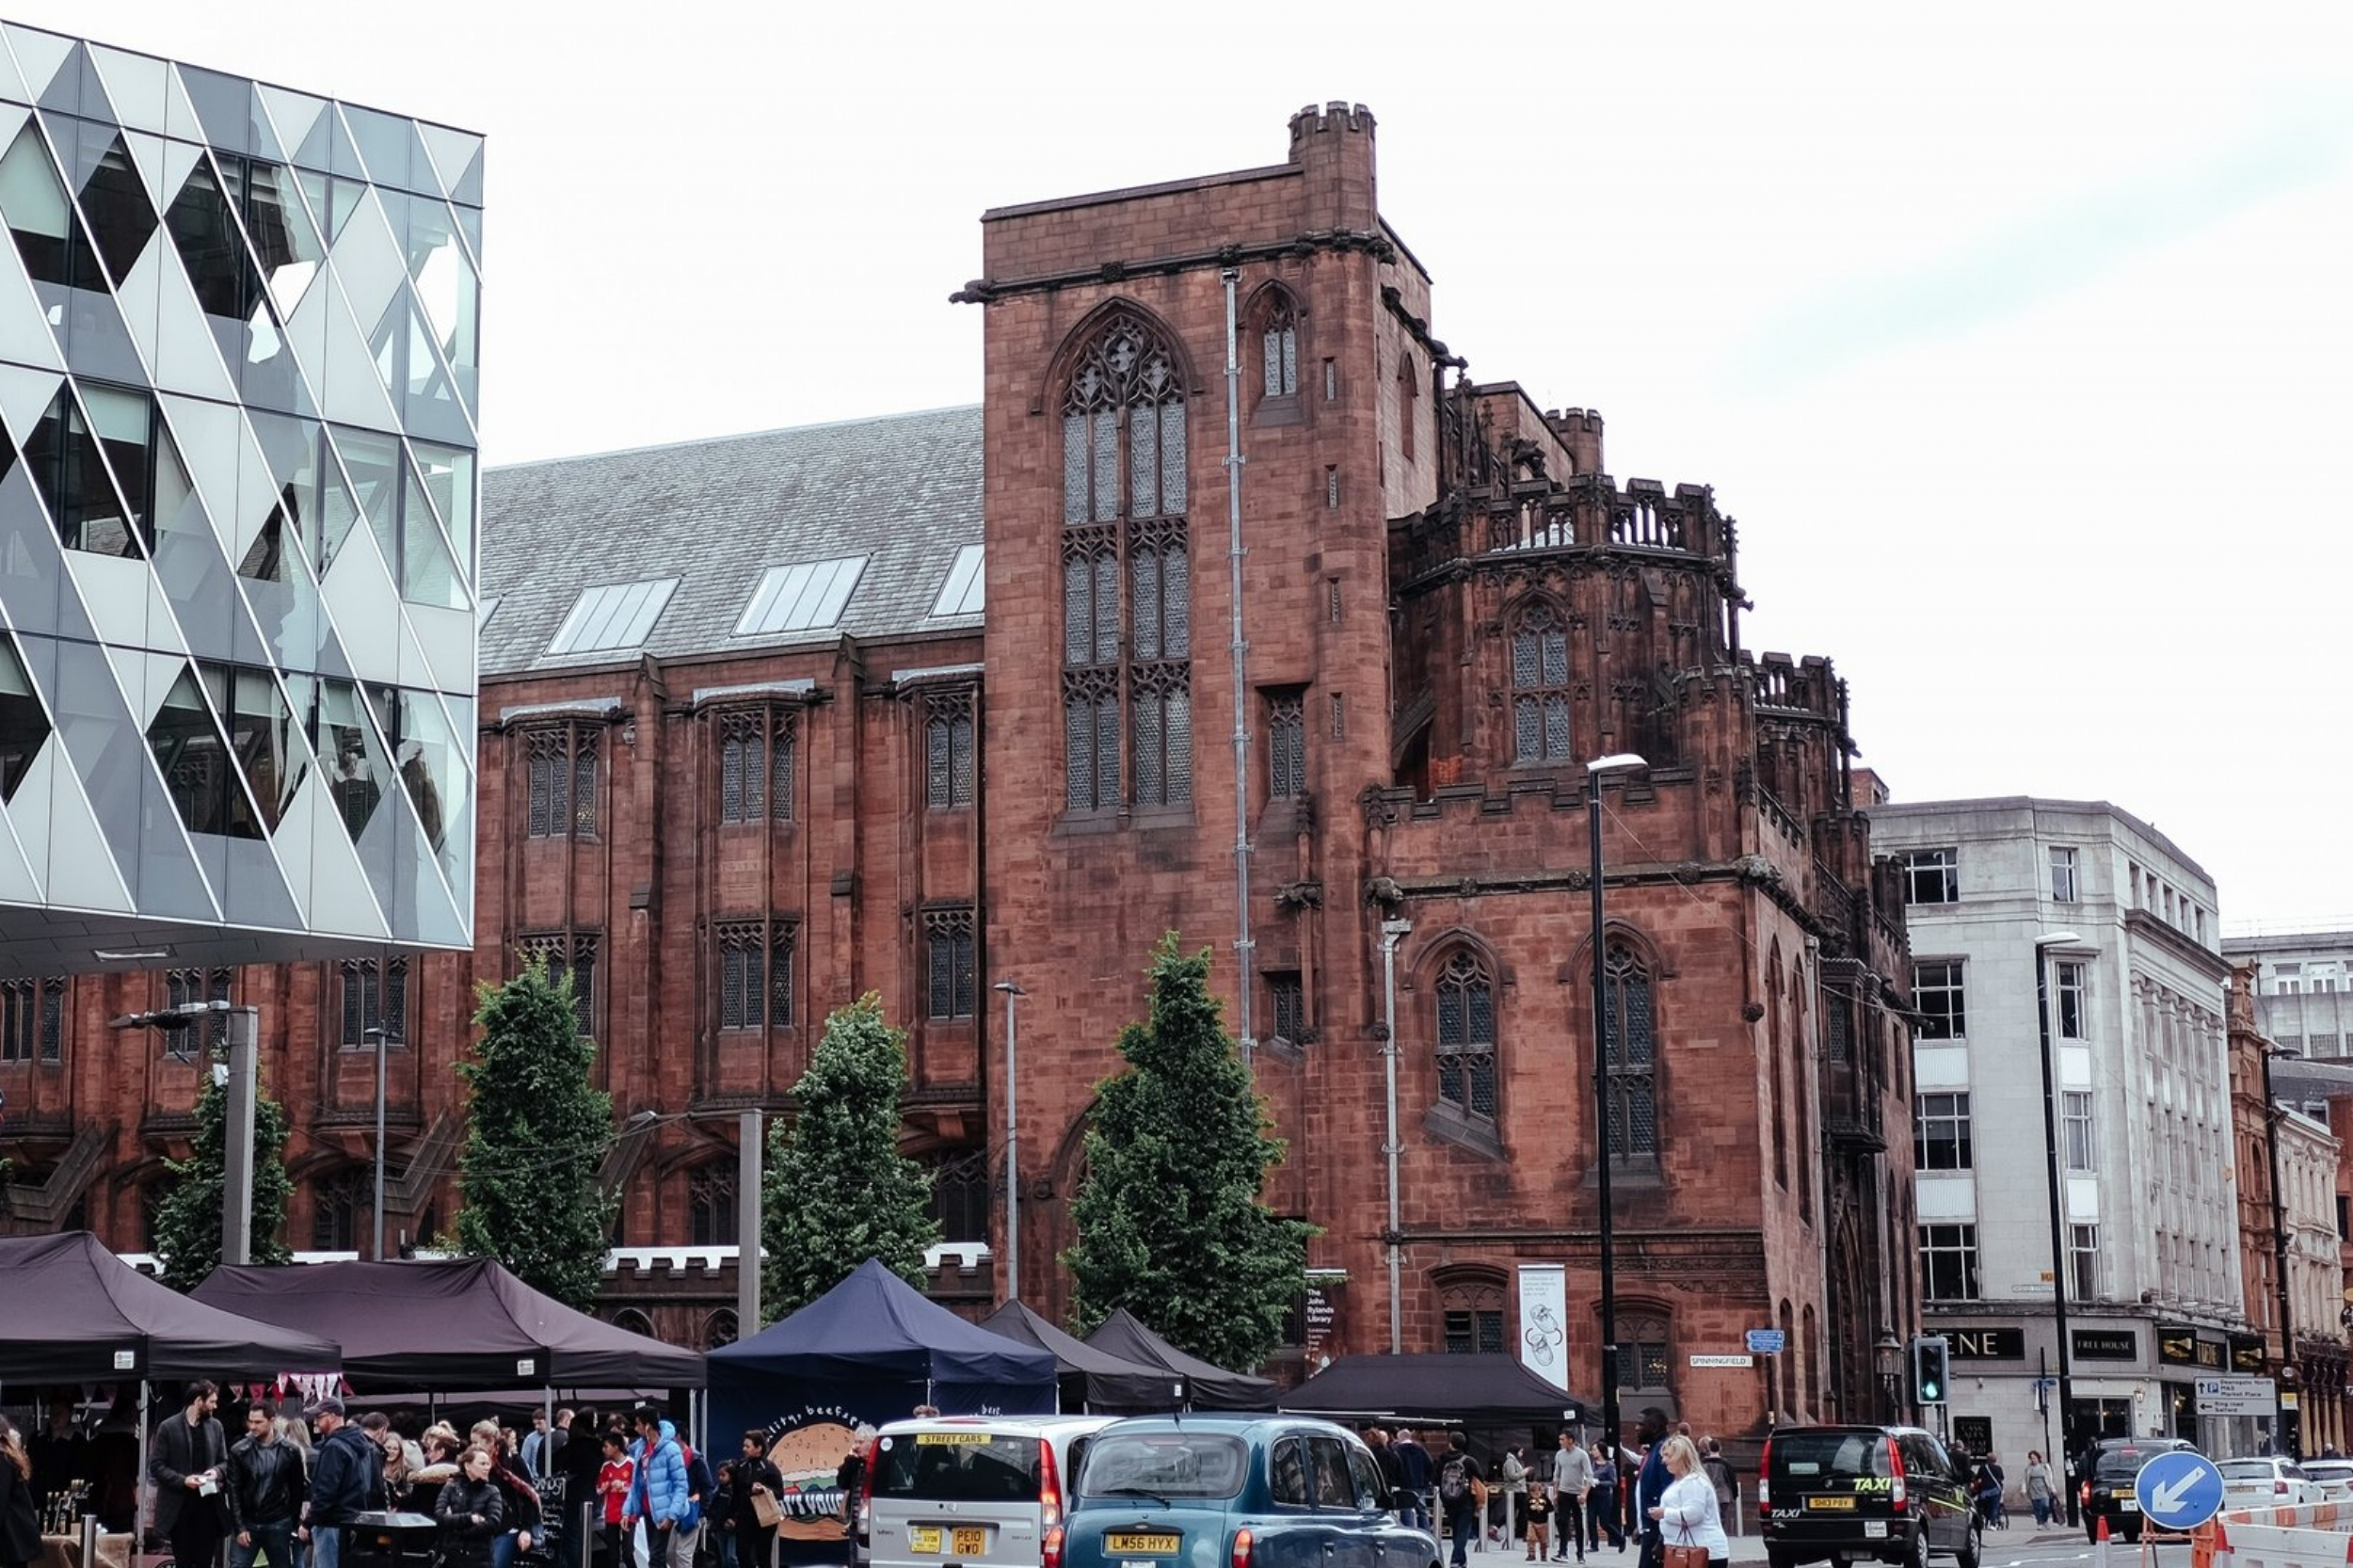 Day 12 Manchester - Spinningfields Makers Market > John Rylands Library> Old Trafford (Manchester United Game)